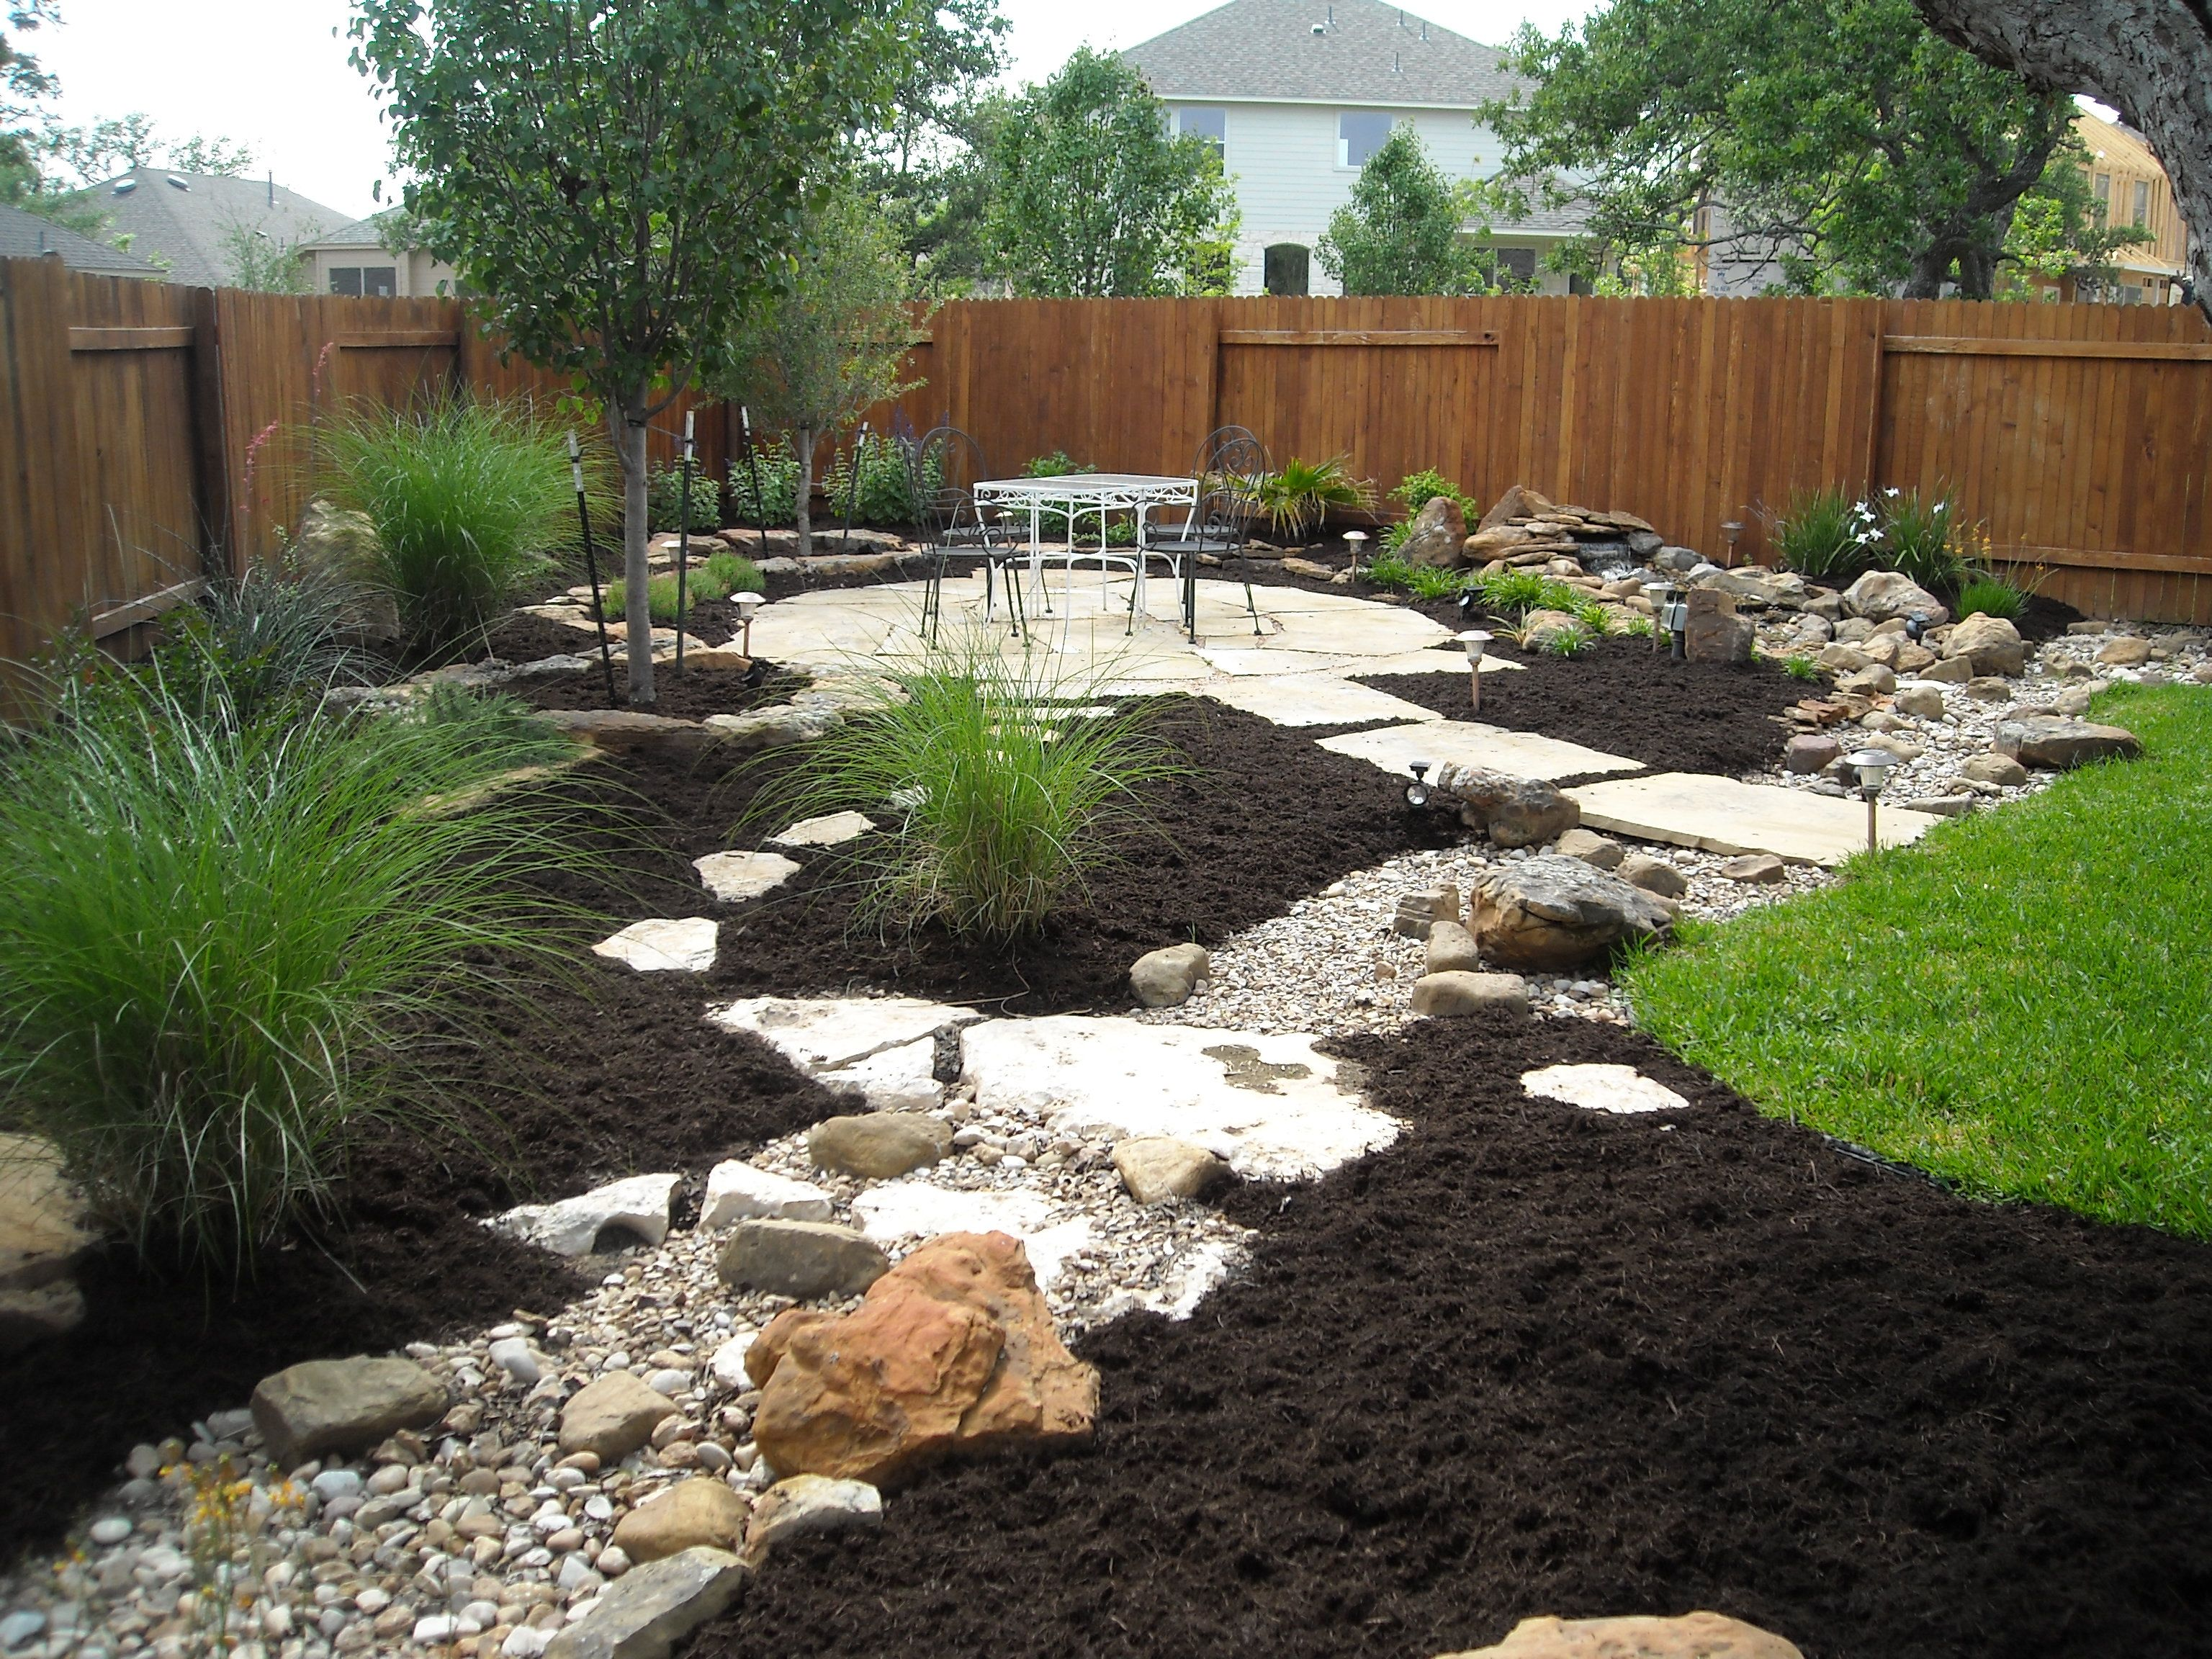 Landscaping Gravel: Ideas for Paths, Ditches, Walls and Gardens ...